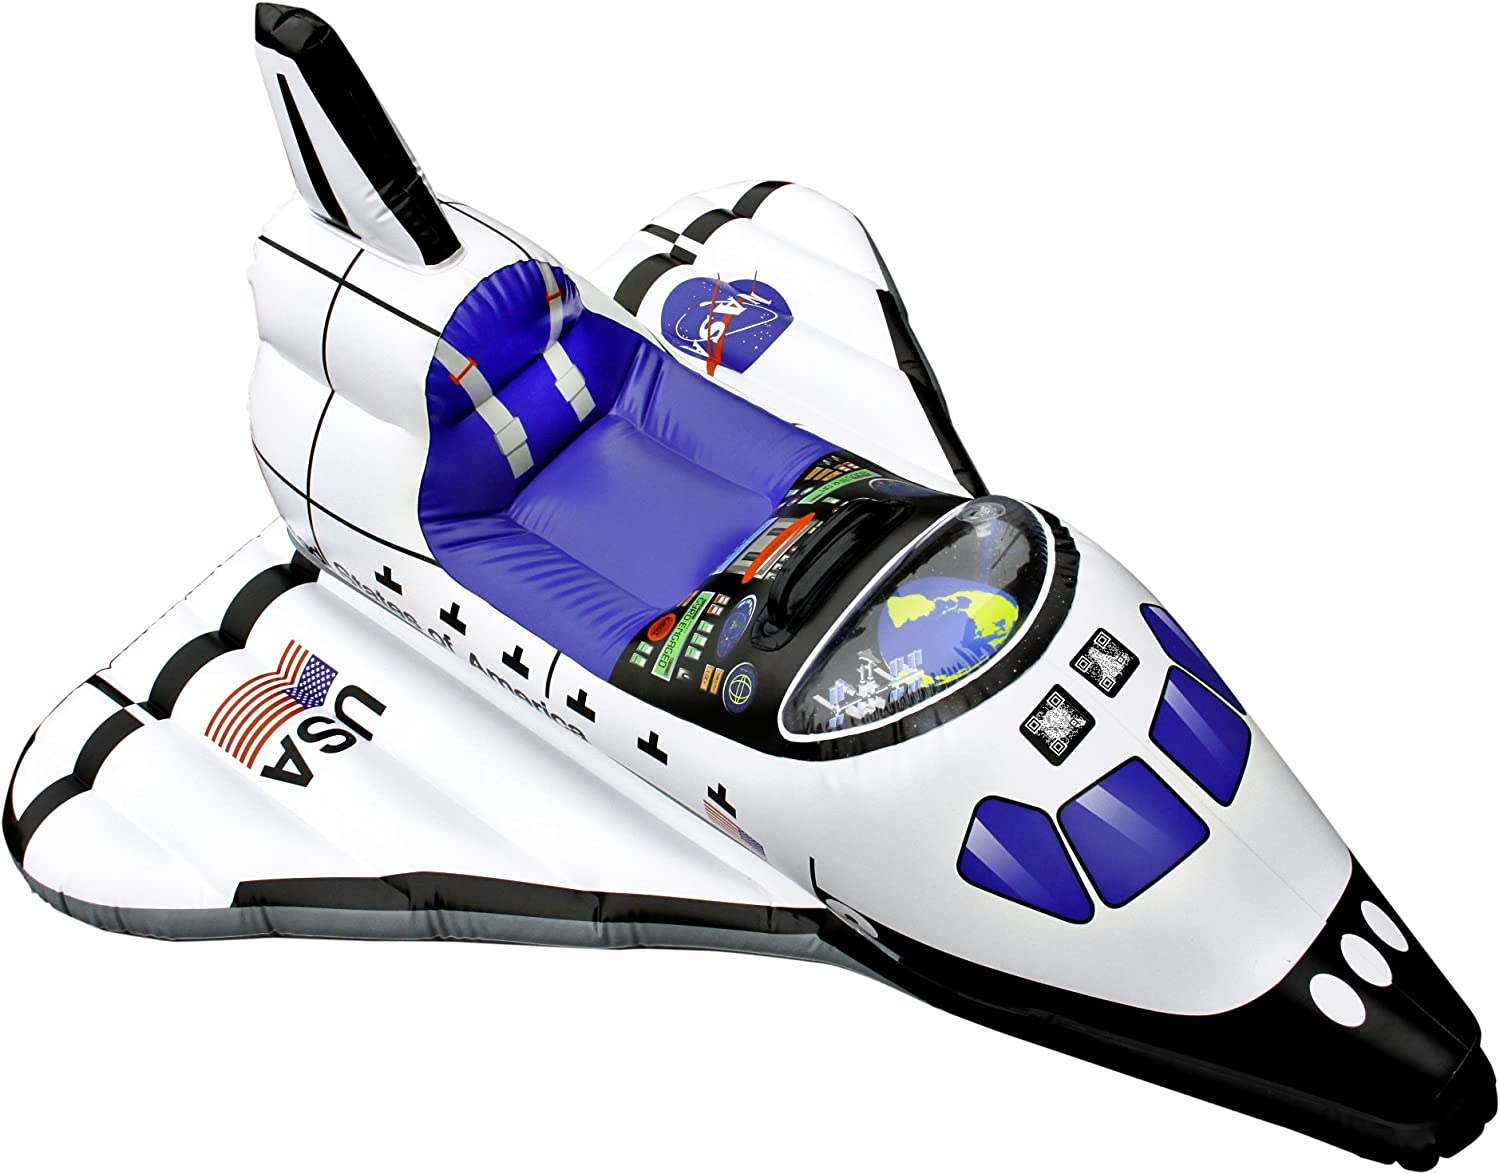 B00CMT8D88 Aeromax Junior Space Explorer Inflatable Space Shuttle 81EwT01qGvL